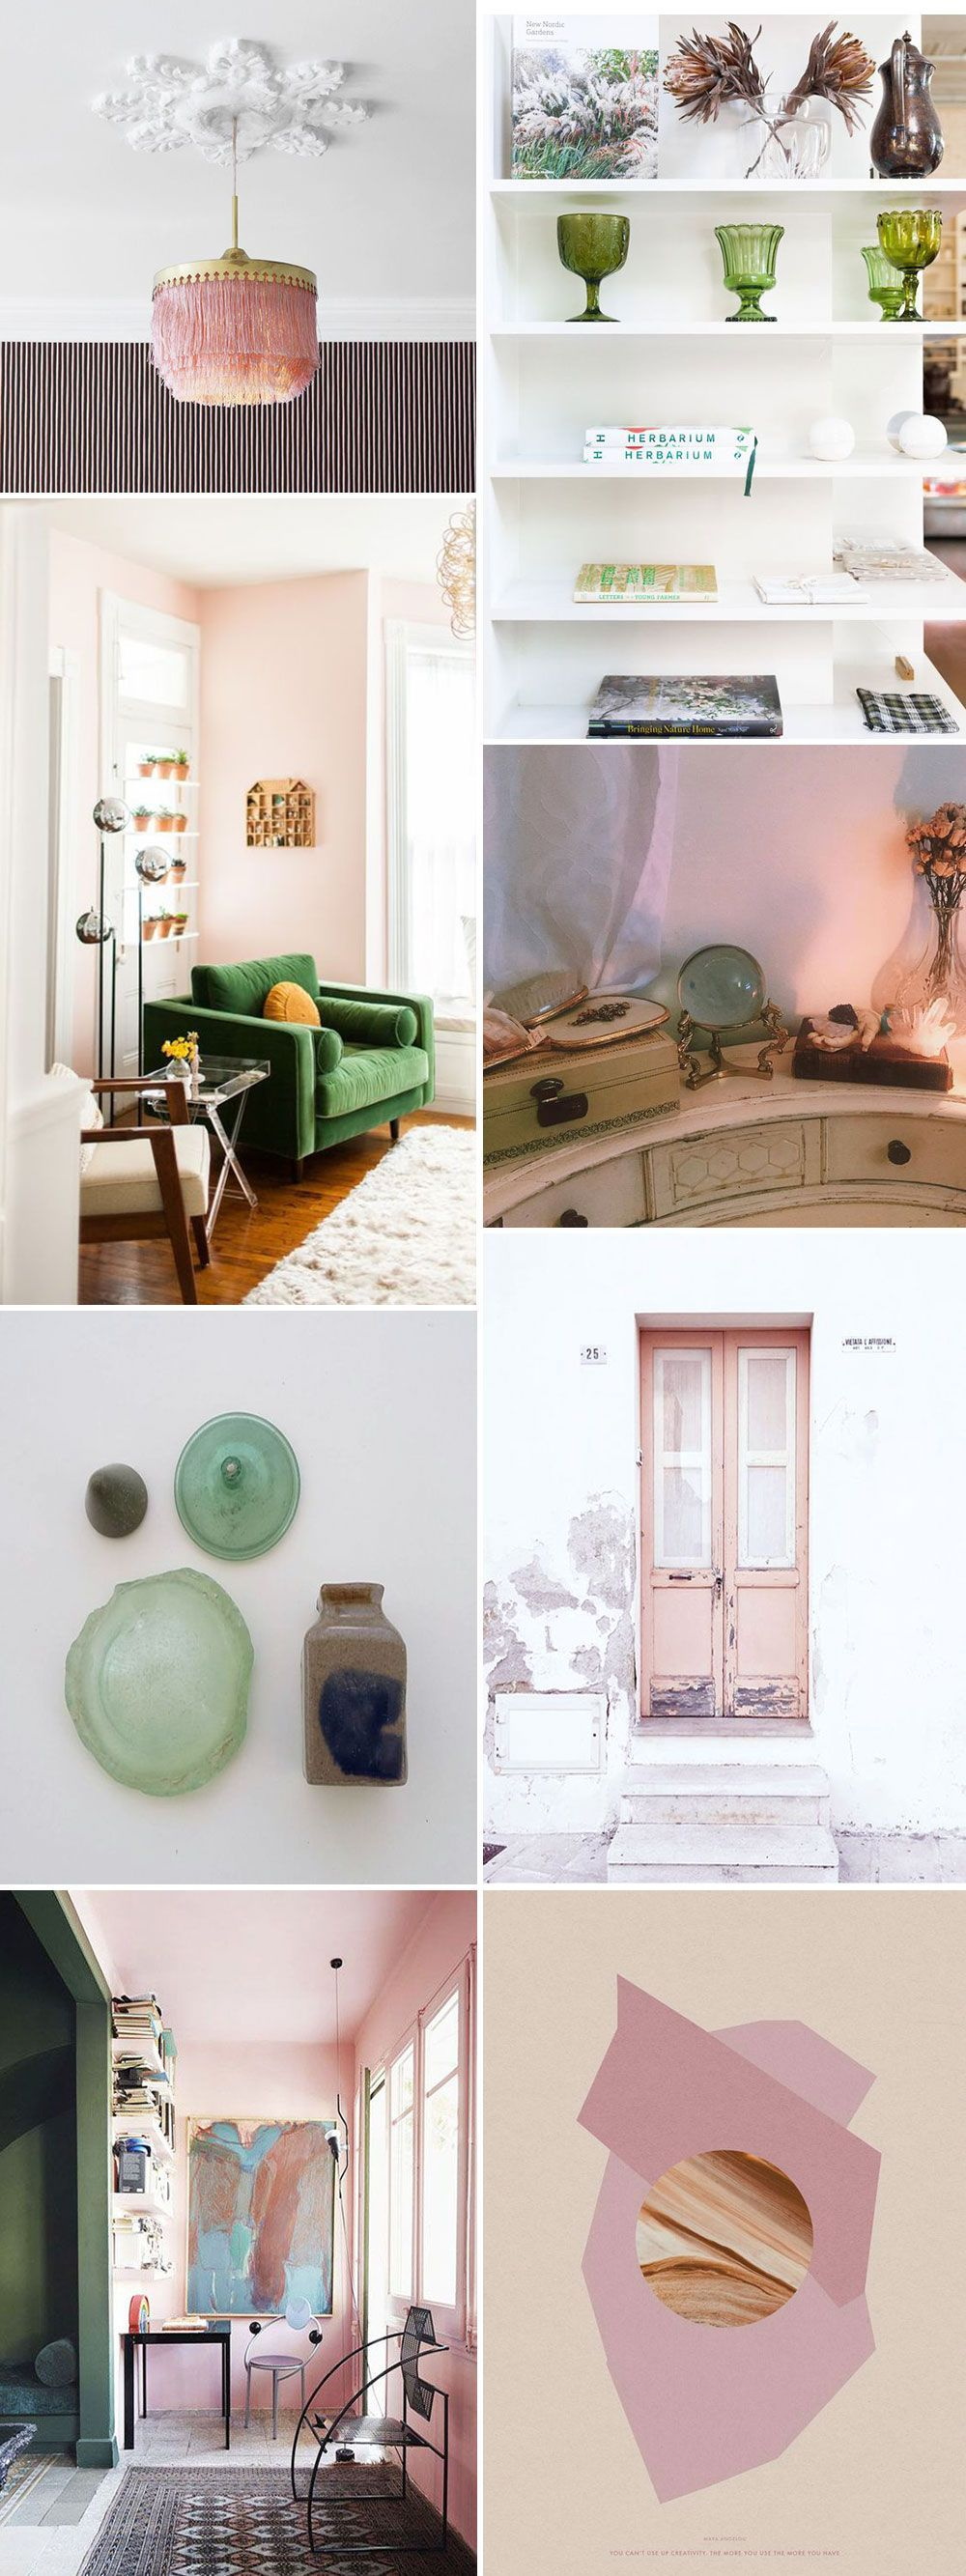 Pale Pink & Green Home Decor Inspiration Sfgirlbybay